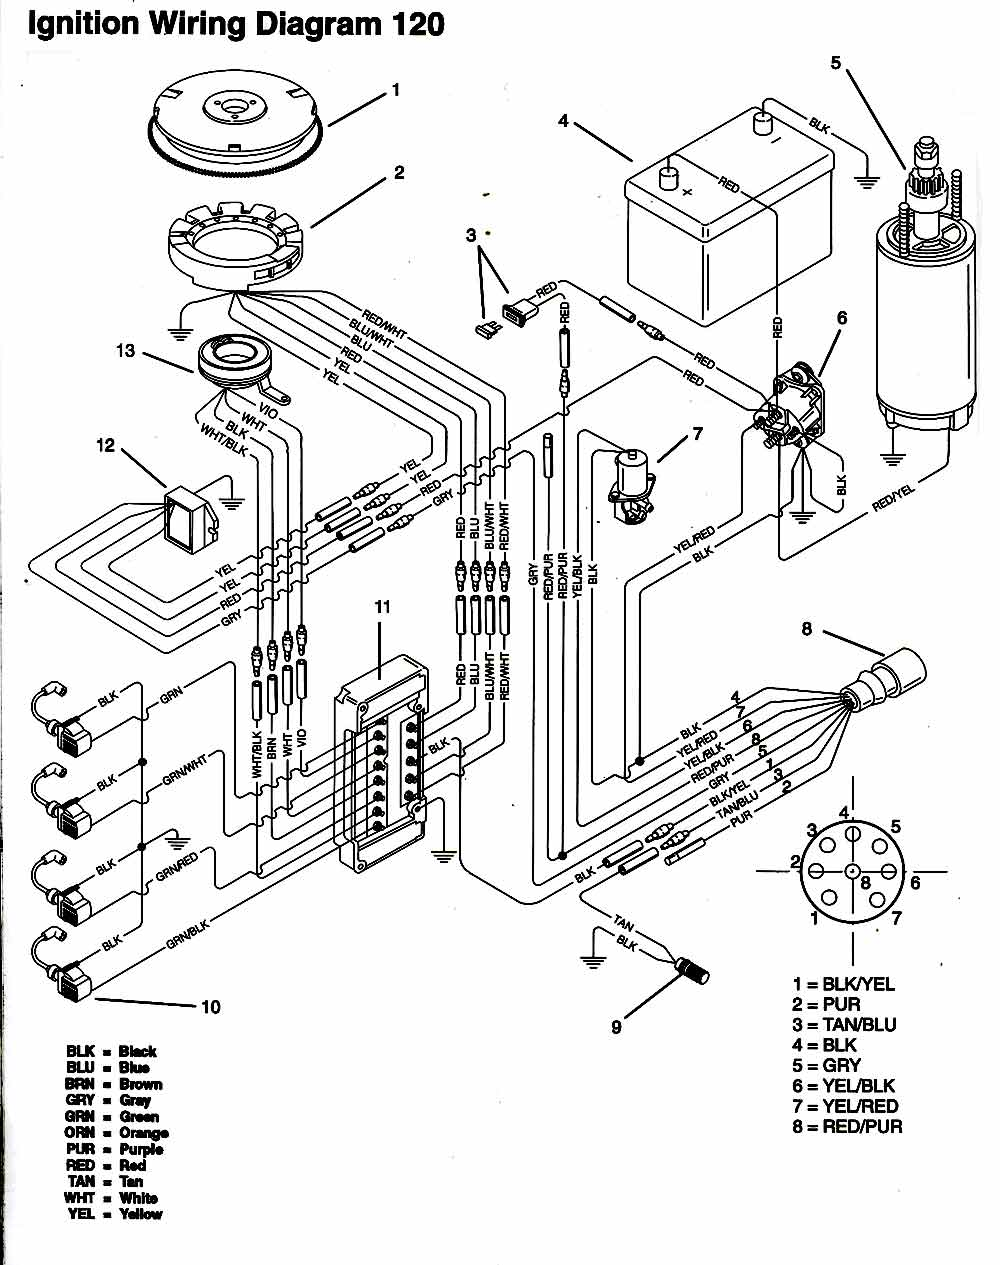 mercury 115 4 stroke wiring diagram wiring library 1979 Evinrude 115 HP Outboard Motor 1995 mercury outboard 115 hp wiring diagram wiring diagram fuse mercury 60 hp wiring diagram